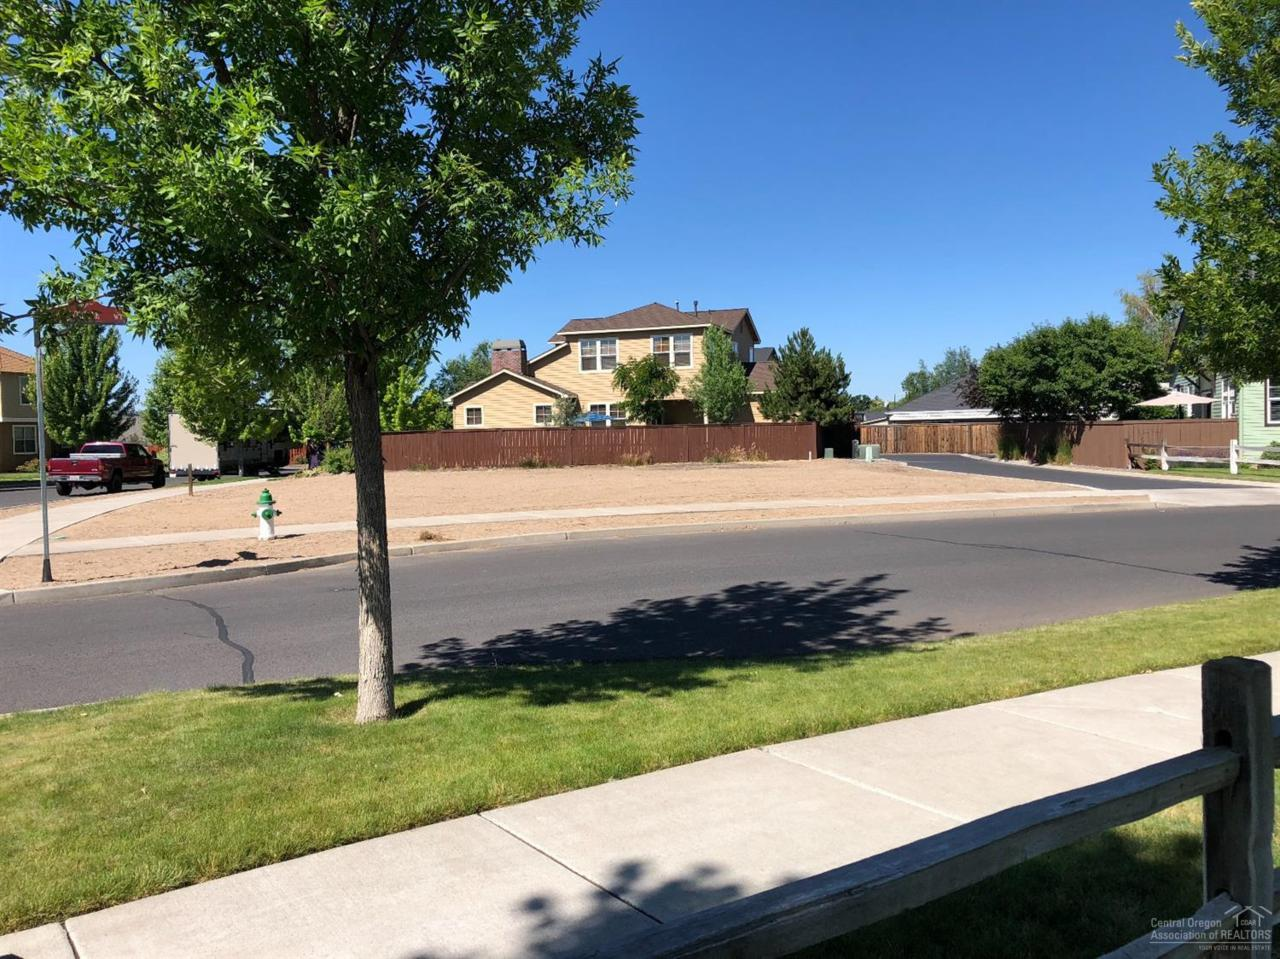 Address Not Available By Request Prineville Or 97754